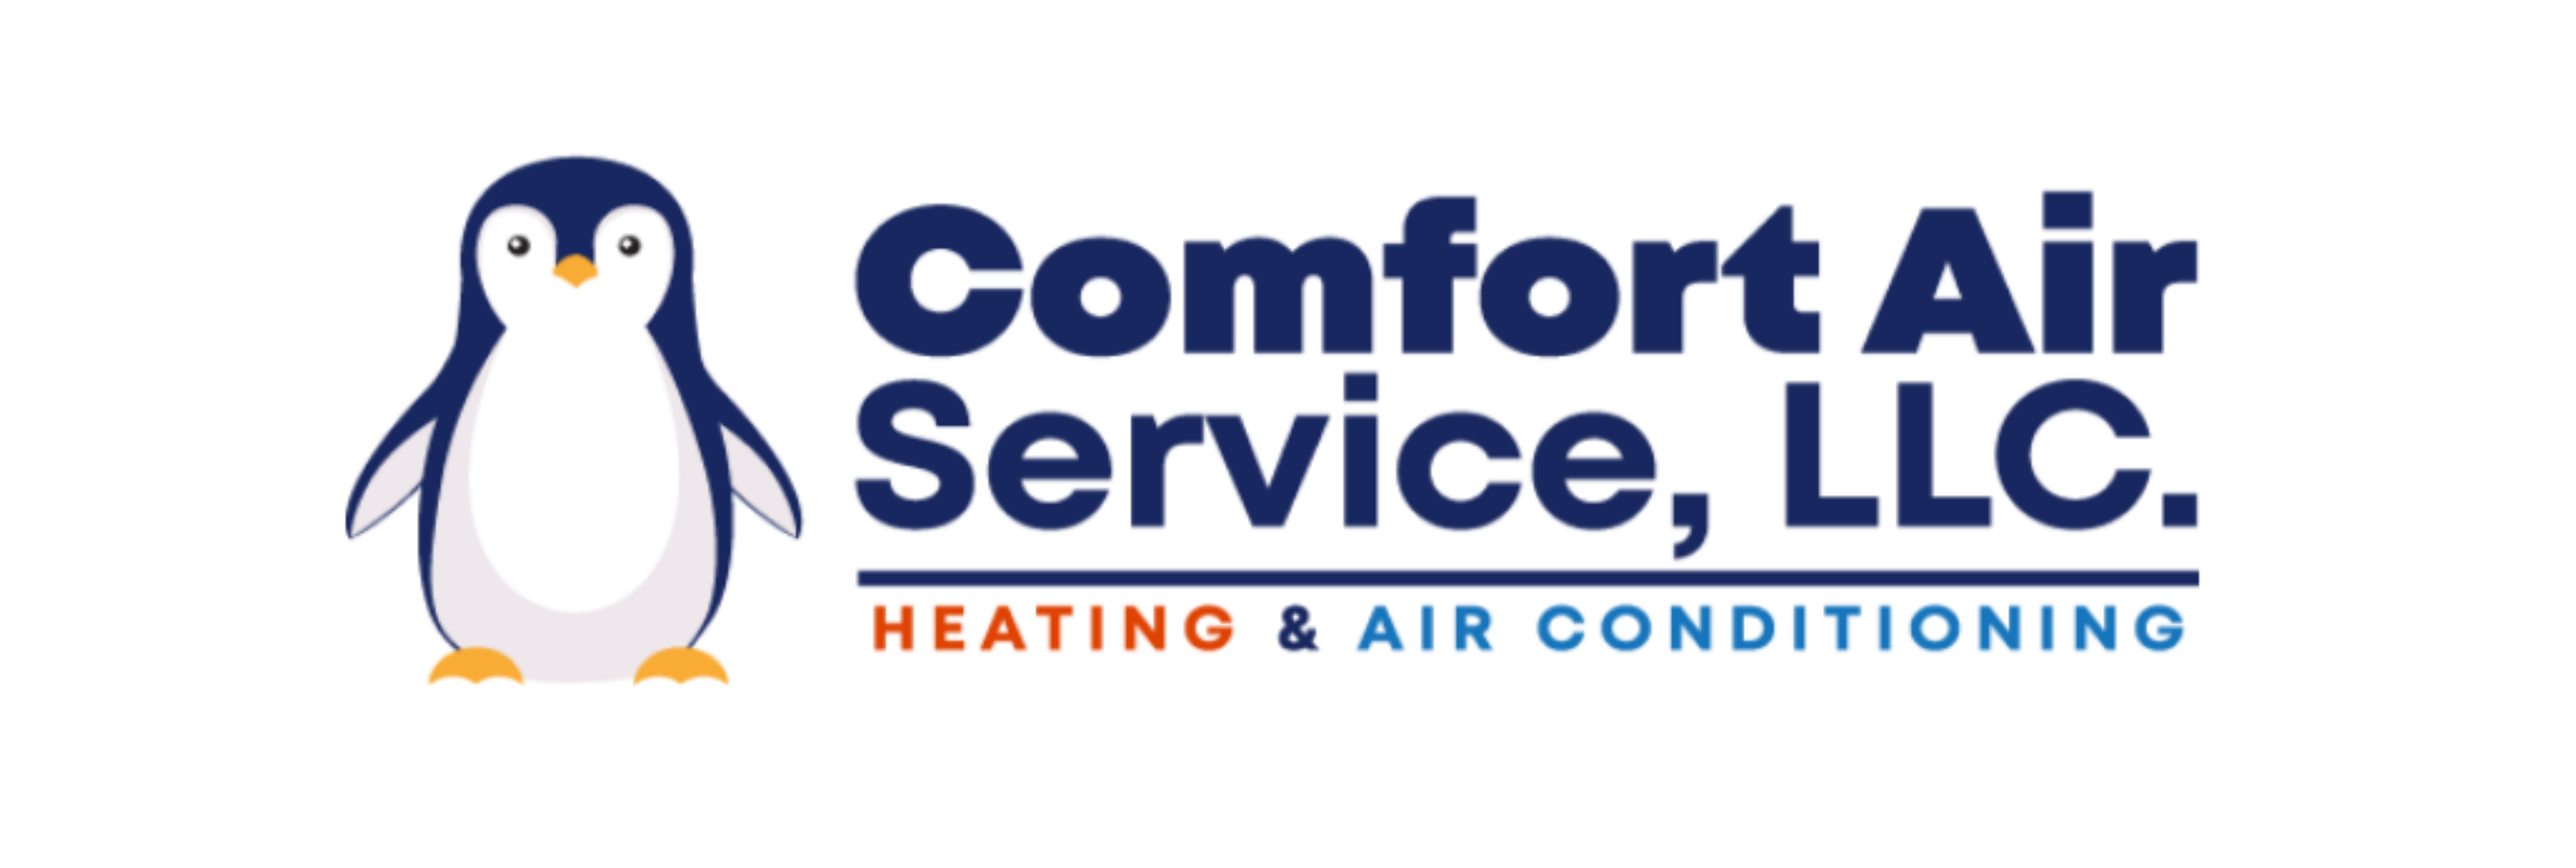 Comfort Air Service LLC reviews | Heating & Air Conditioning/HVAC at 29310 Erickson Dr - Easton MD